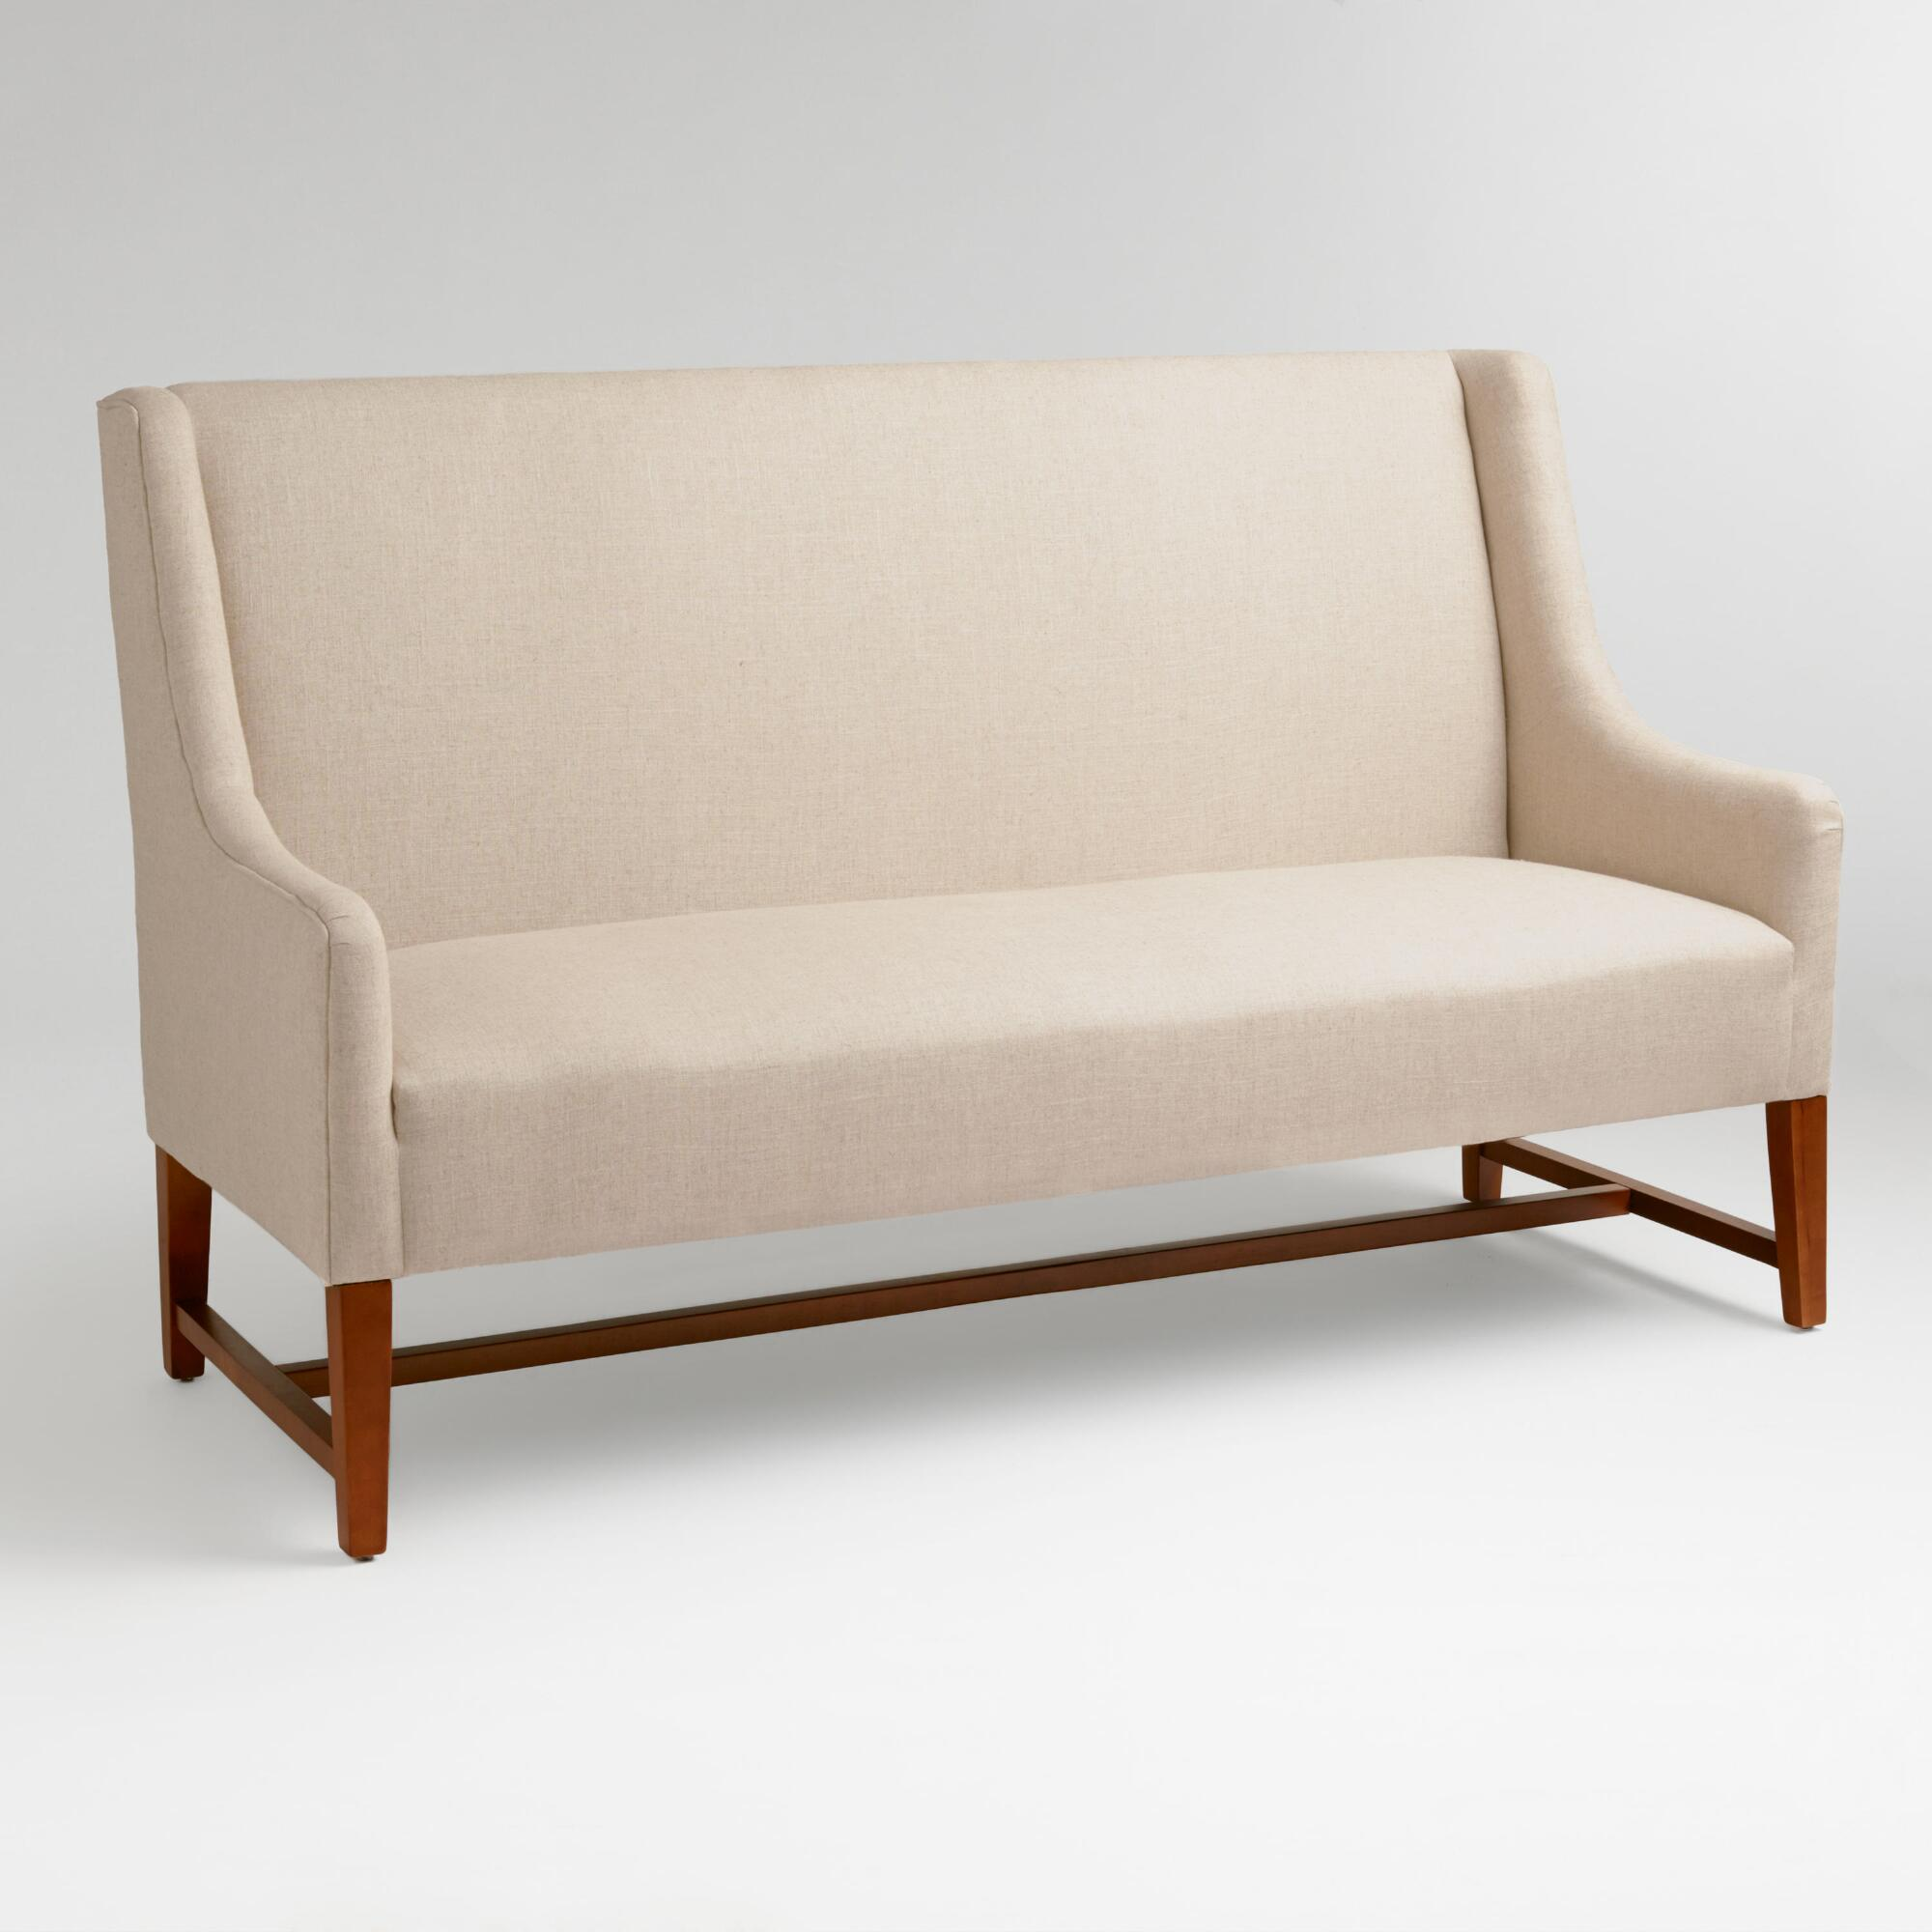 How to pick a table for a banquette joy studio design Banquette bench